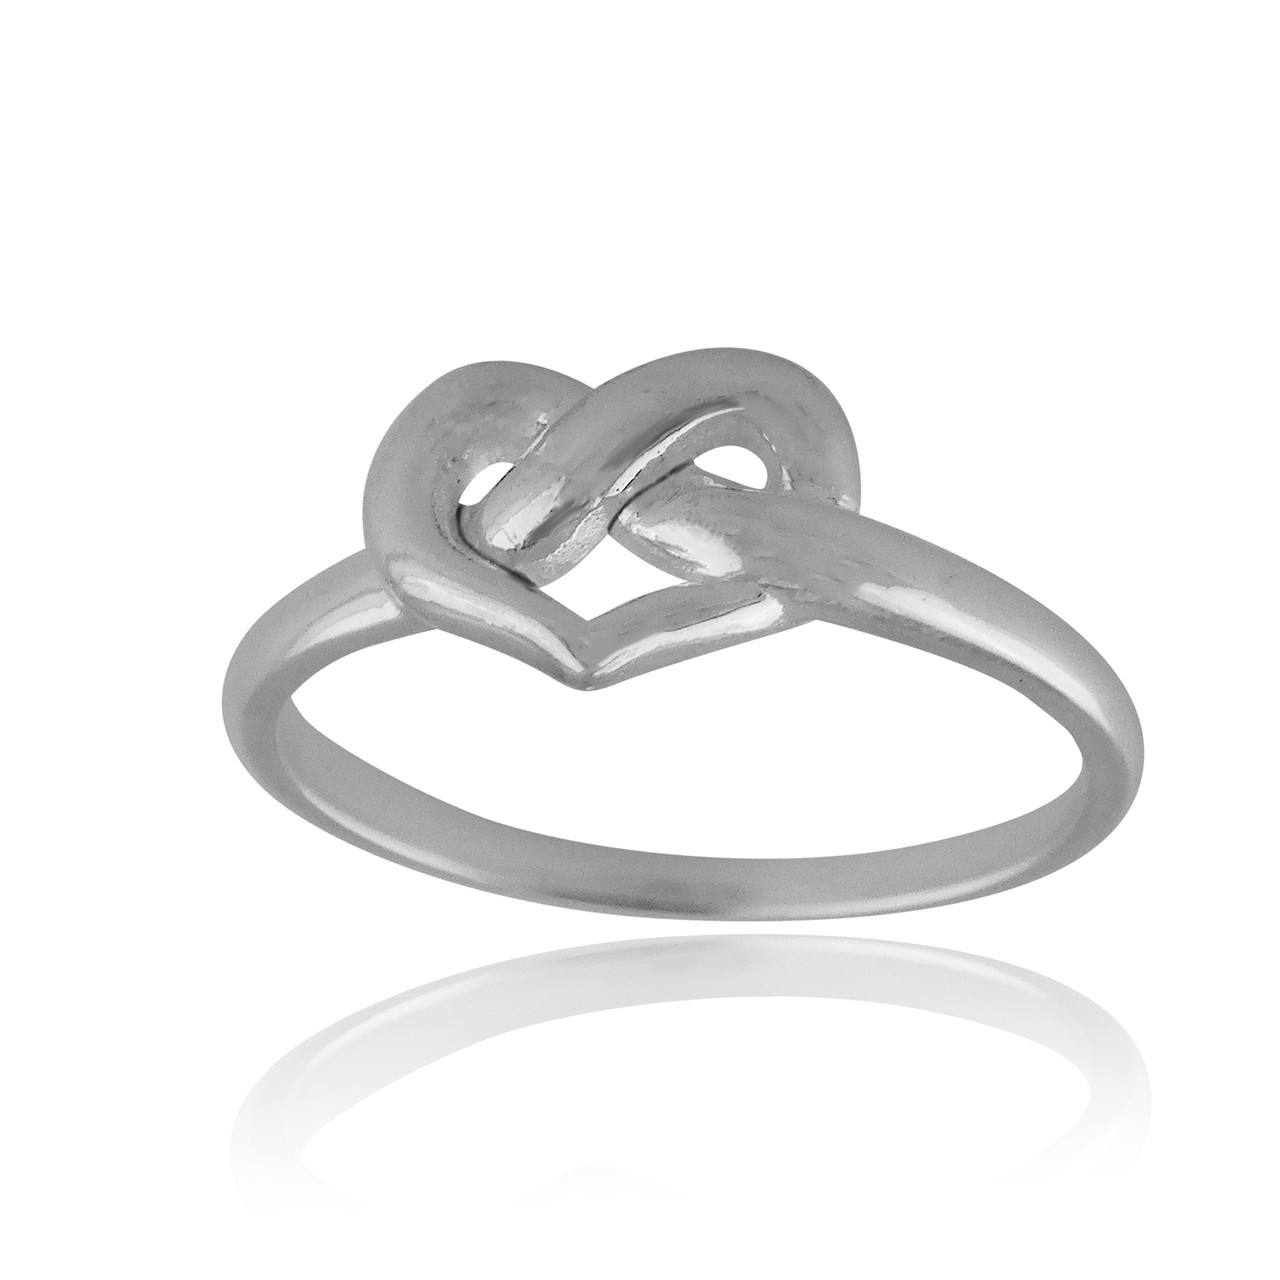 Heart Infinity Knot Ring 925 Sterling Silver